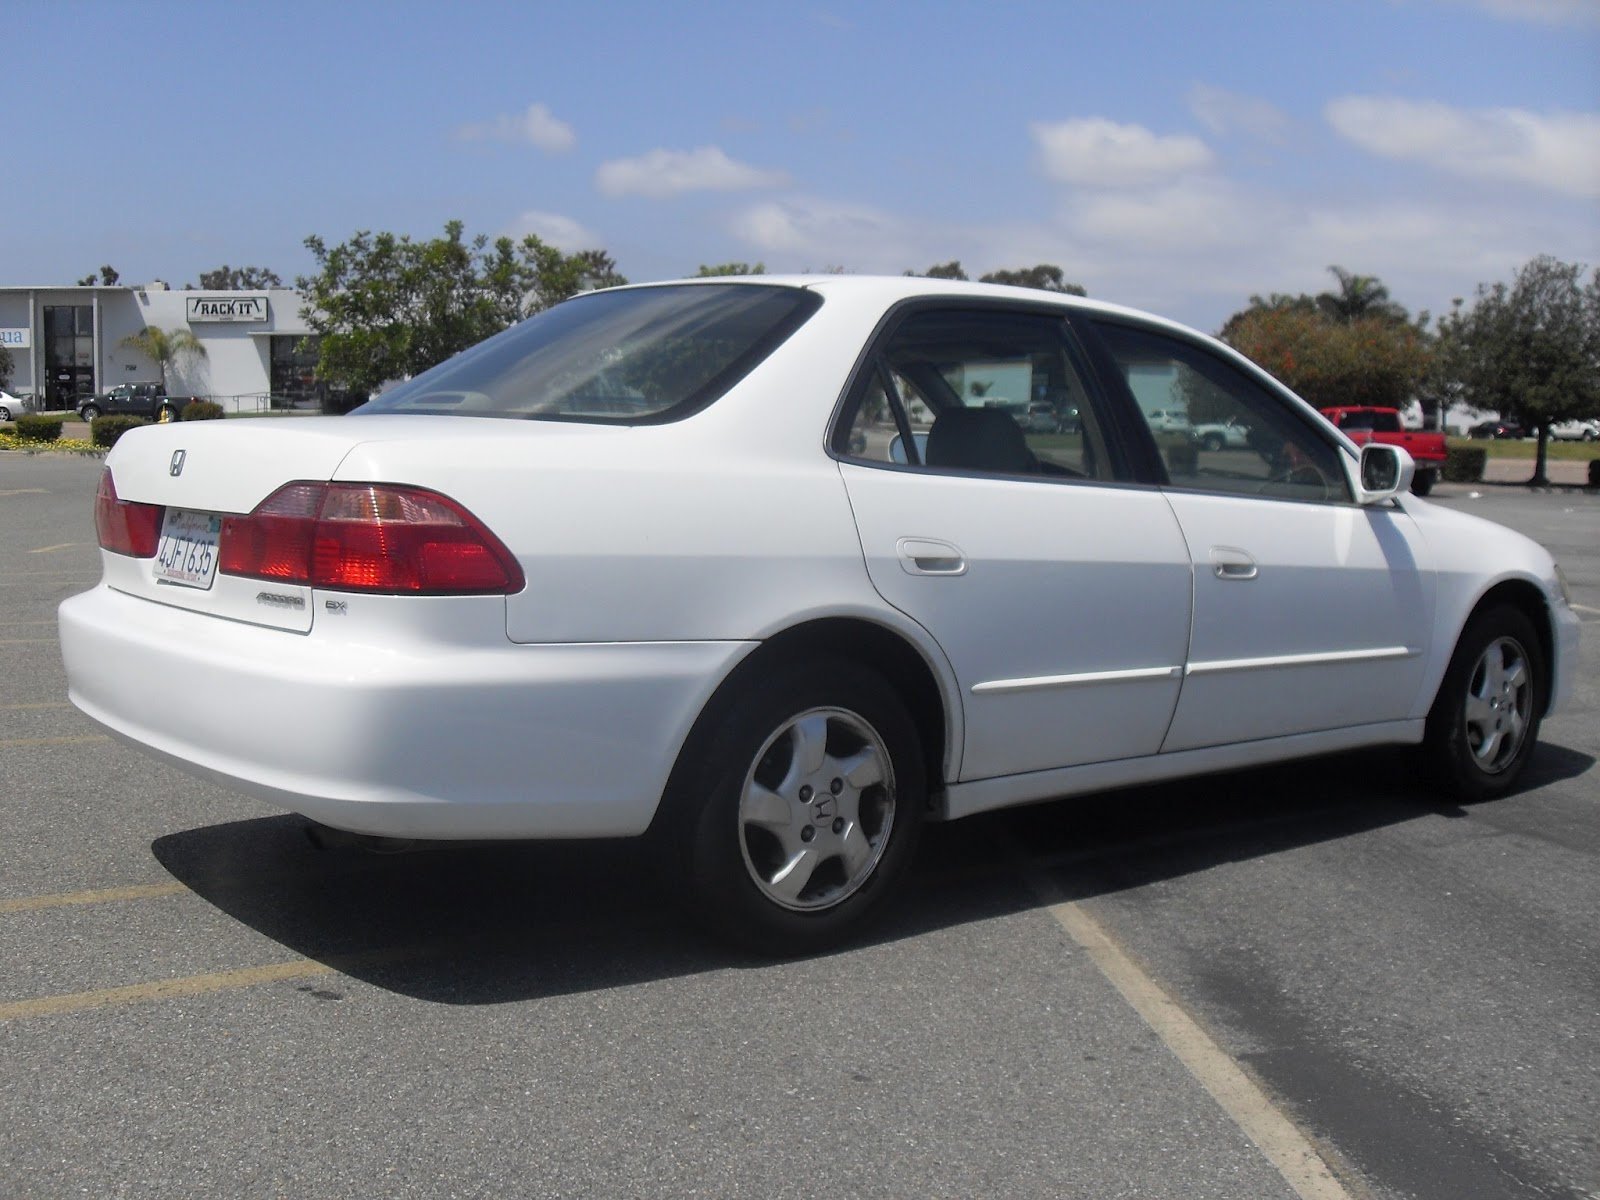 2000] Honda - Accord EX (White)